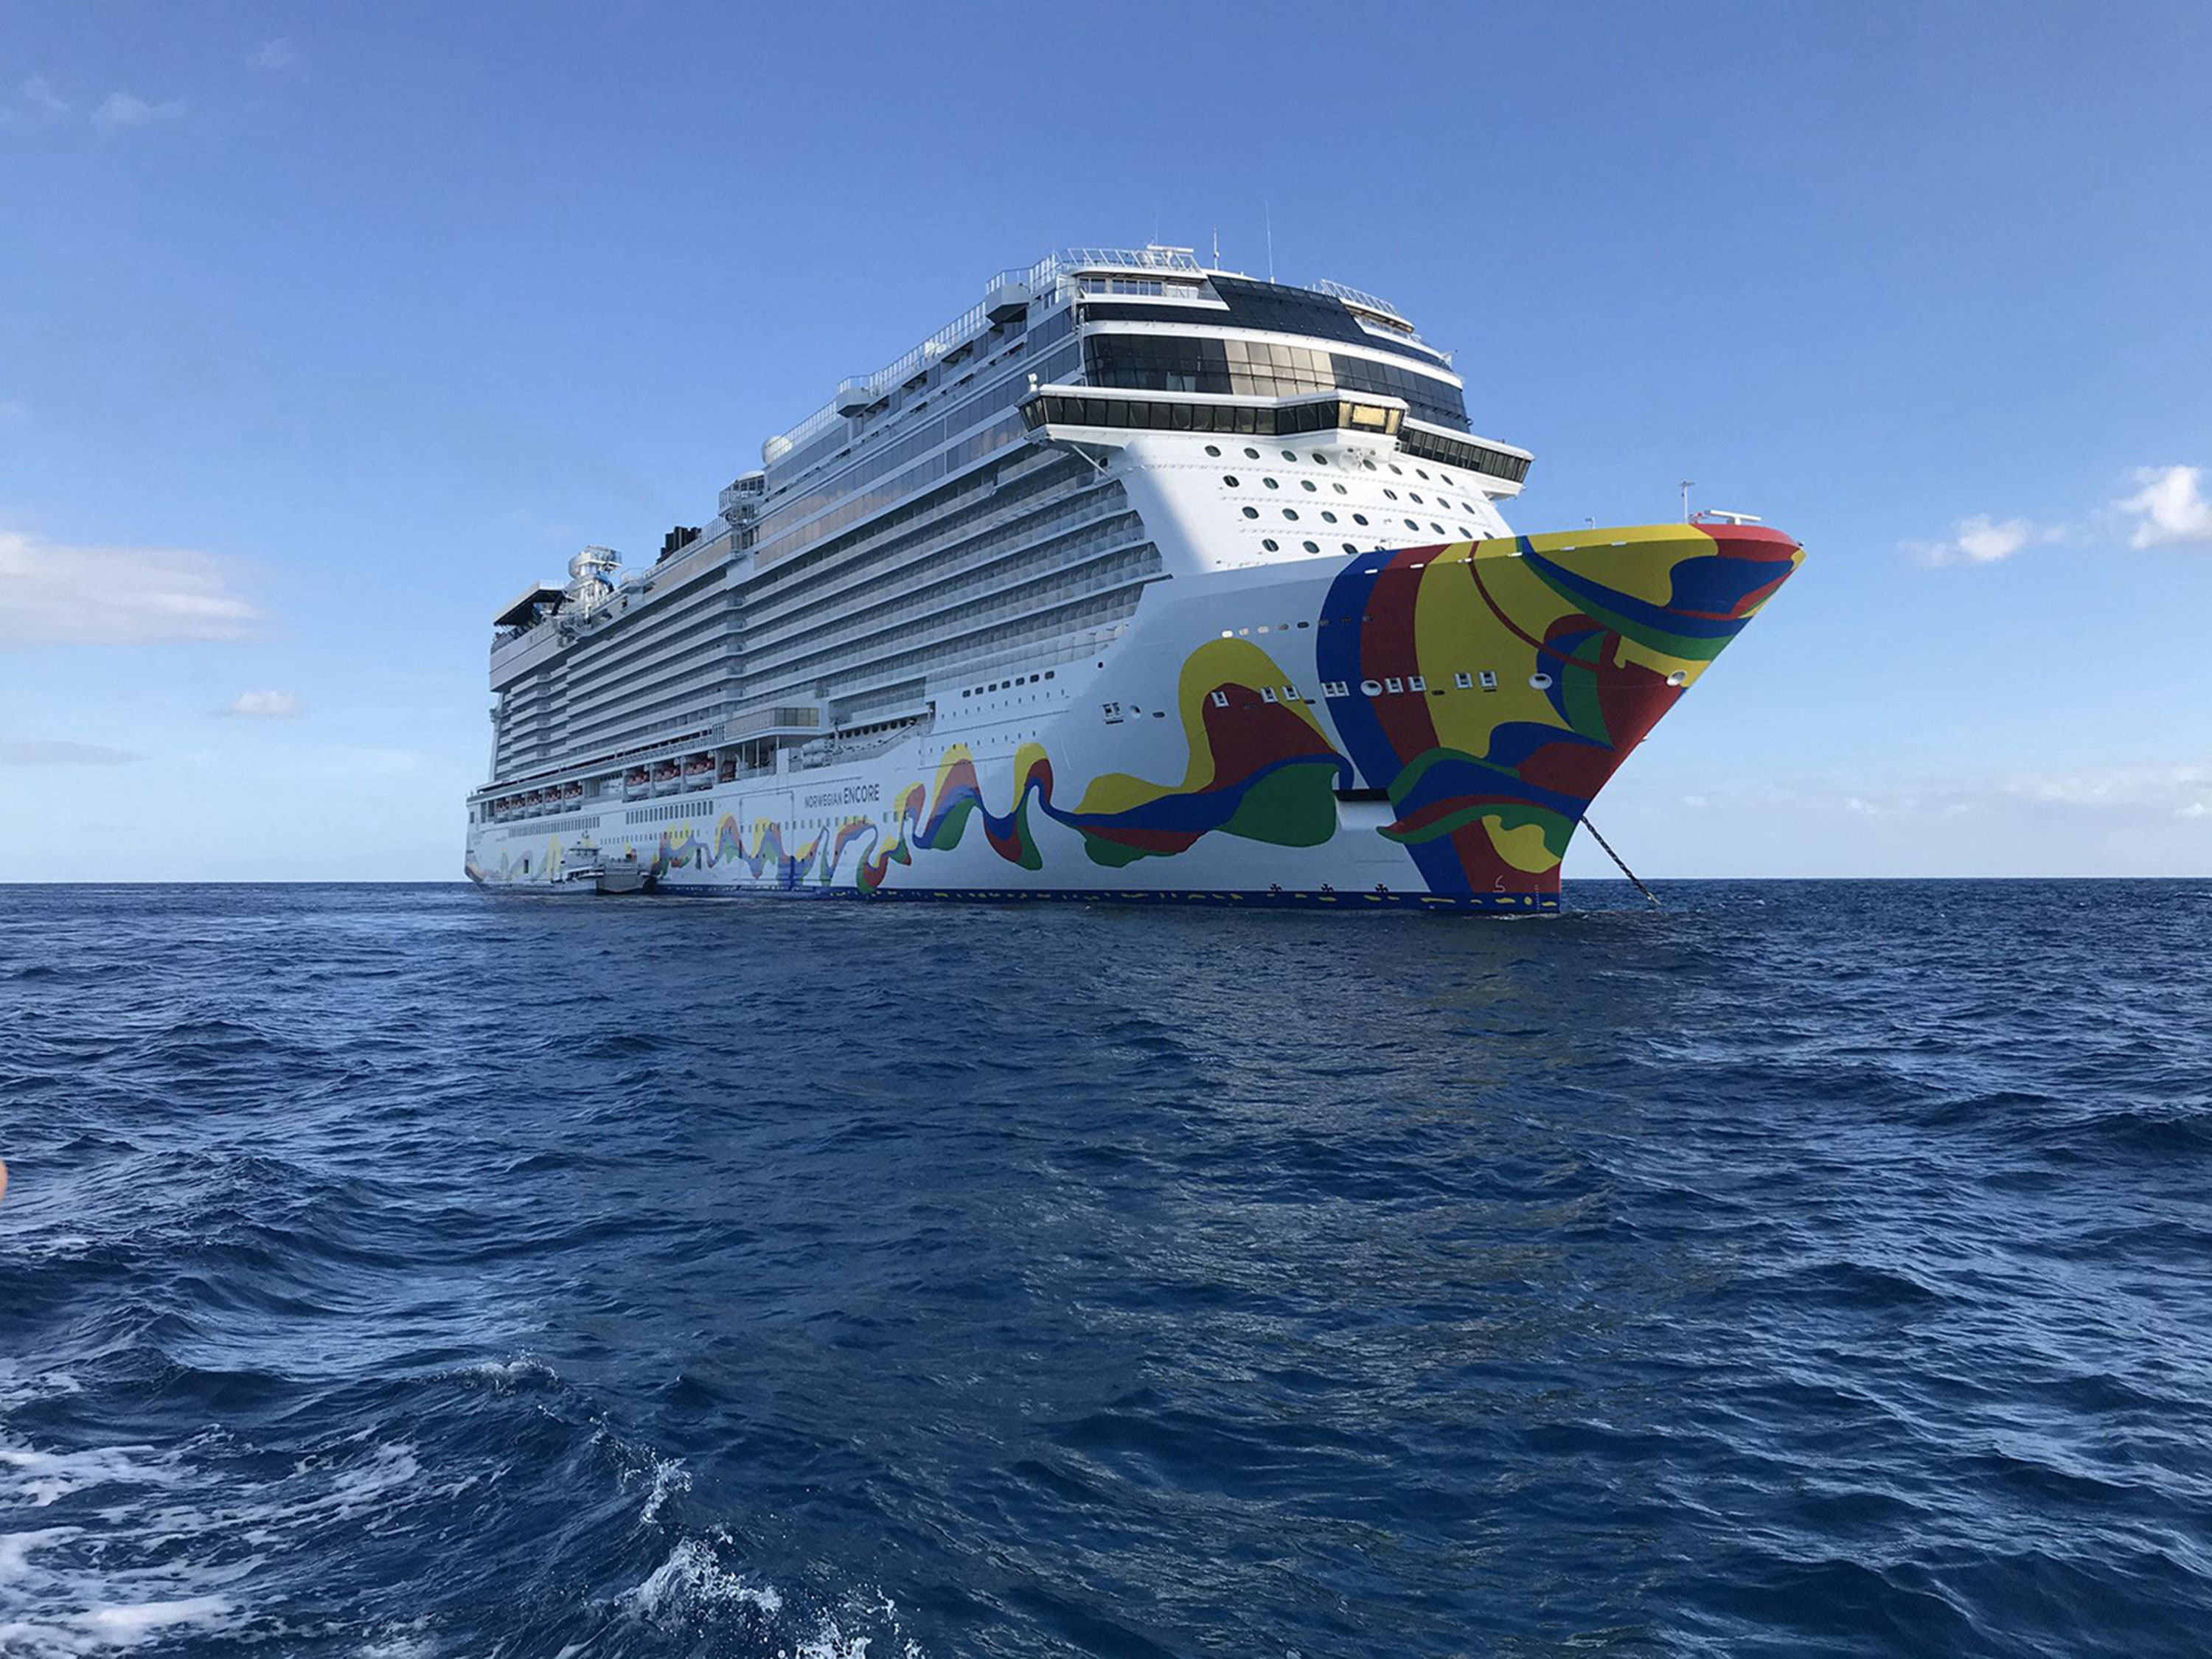 The Norwegian Encore cruise ship is seen during its inaugural sailing in 2019 from PortMiami in Florida.